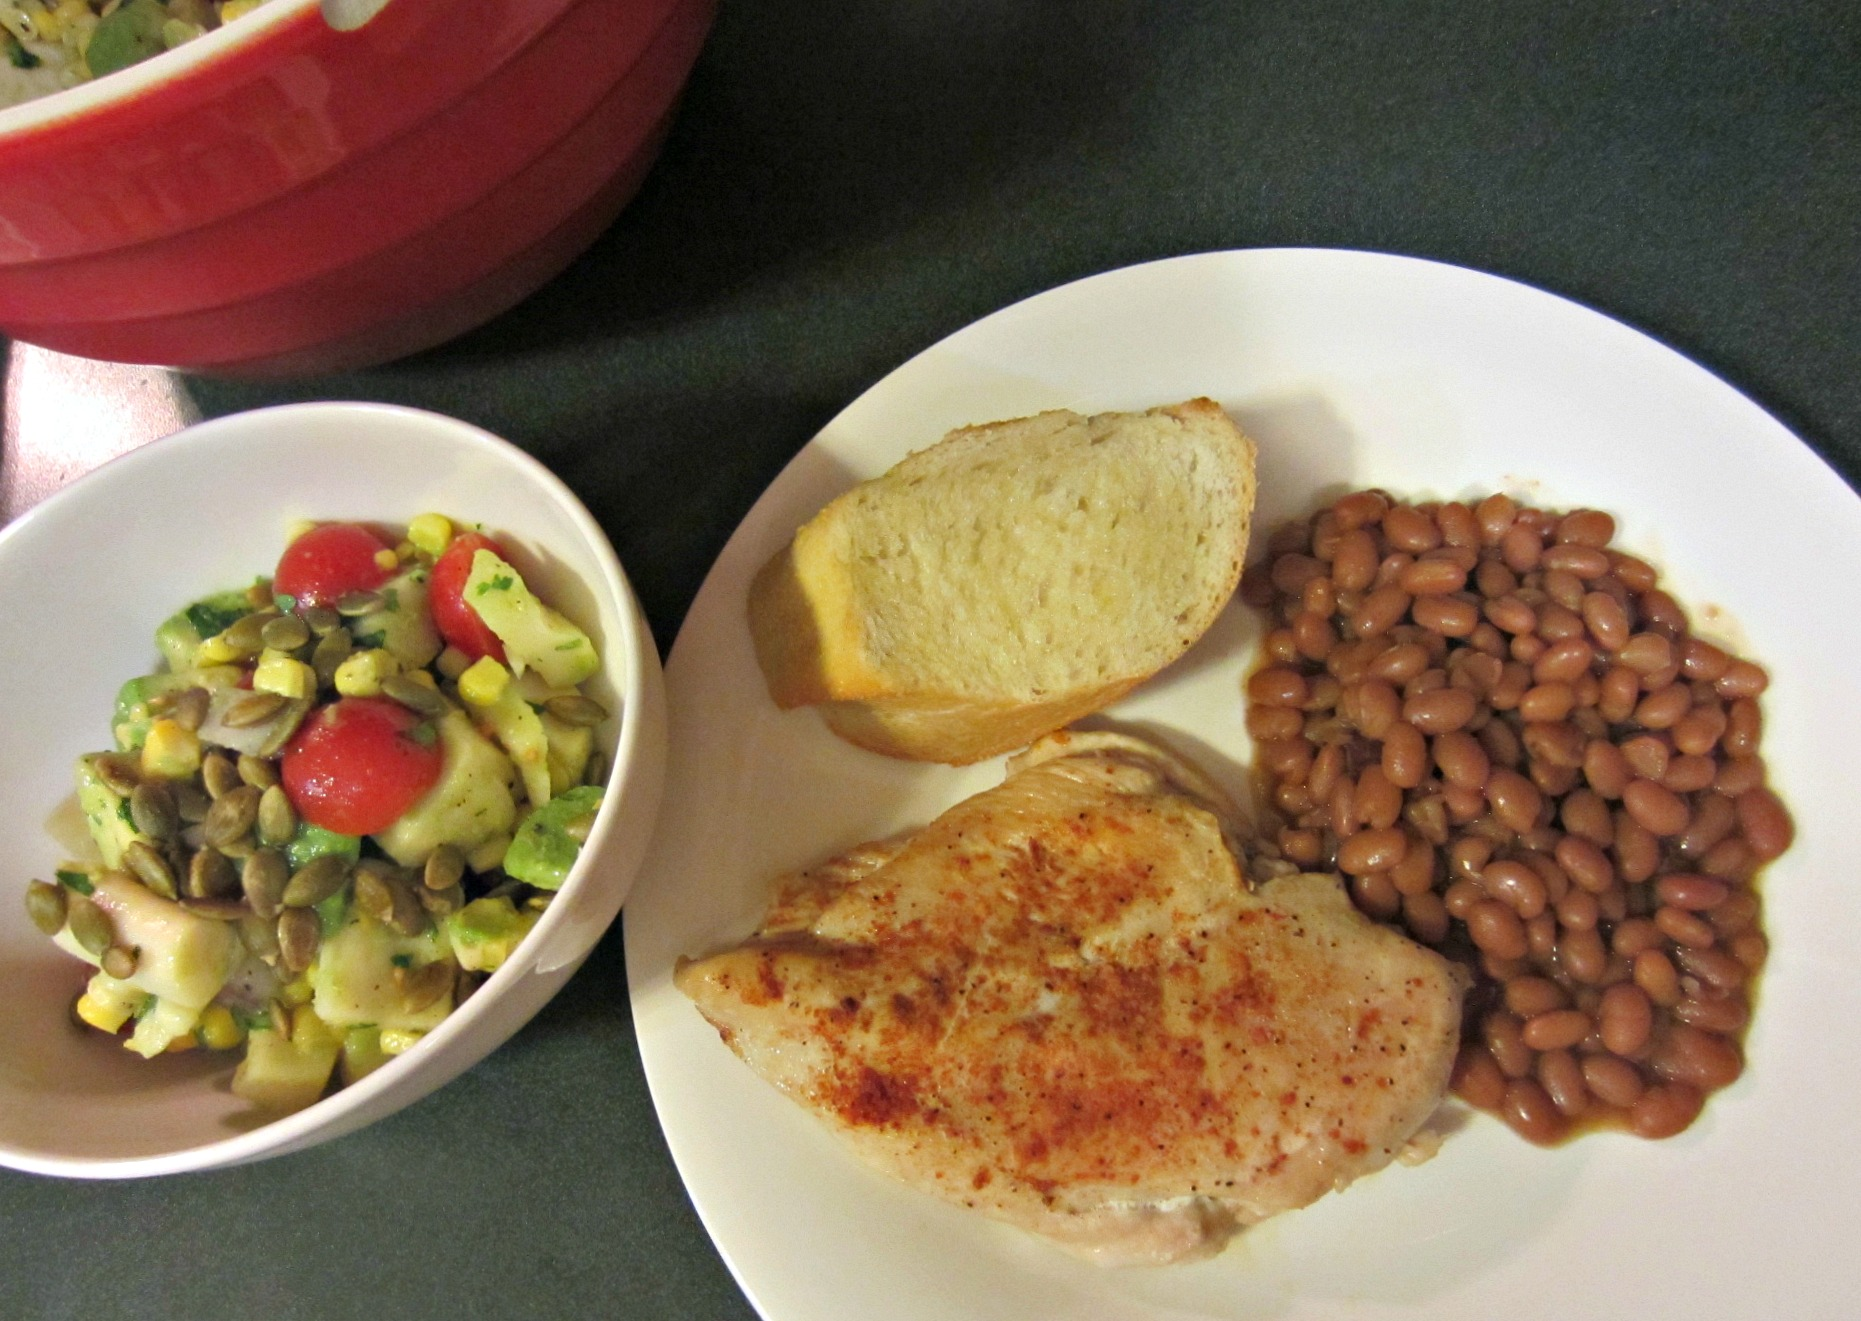 chicken dinner with beans and healthy avocado salad